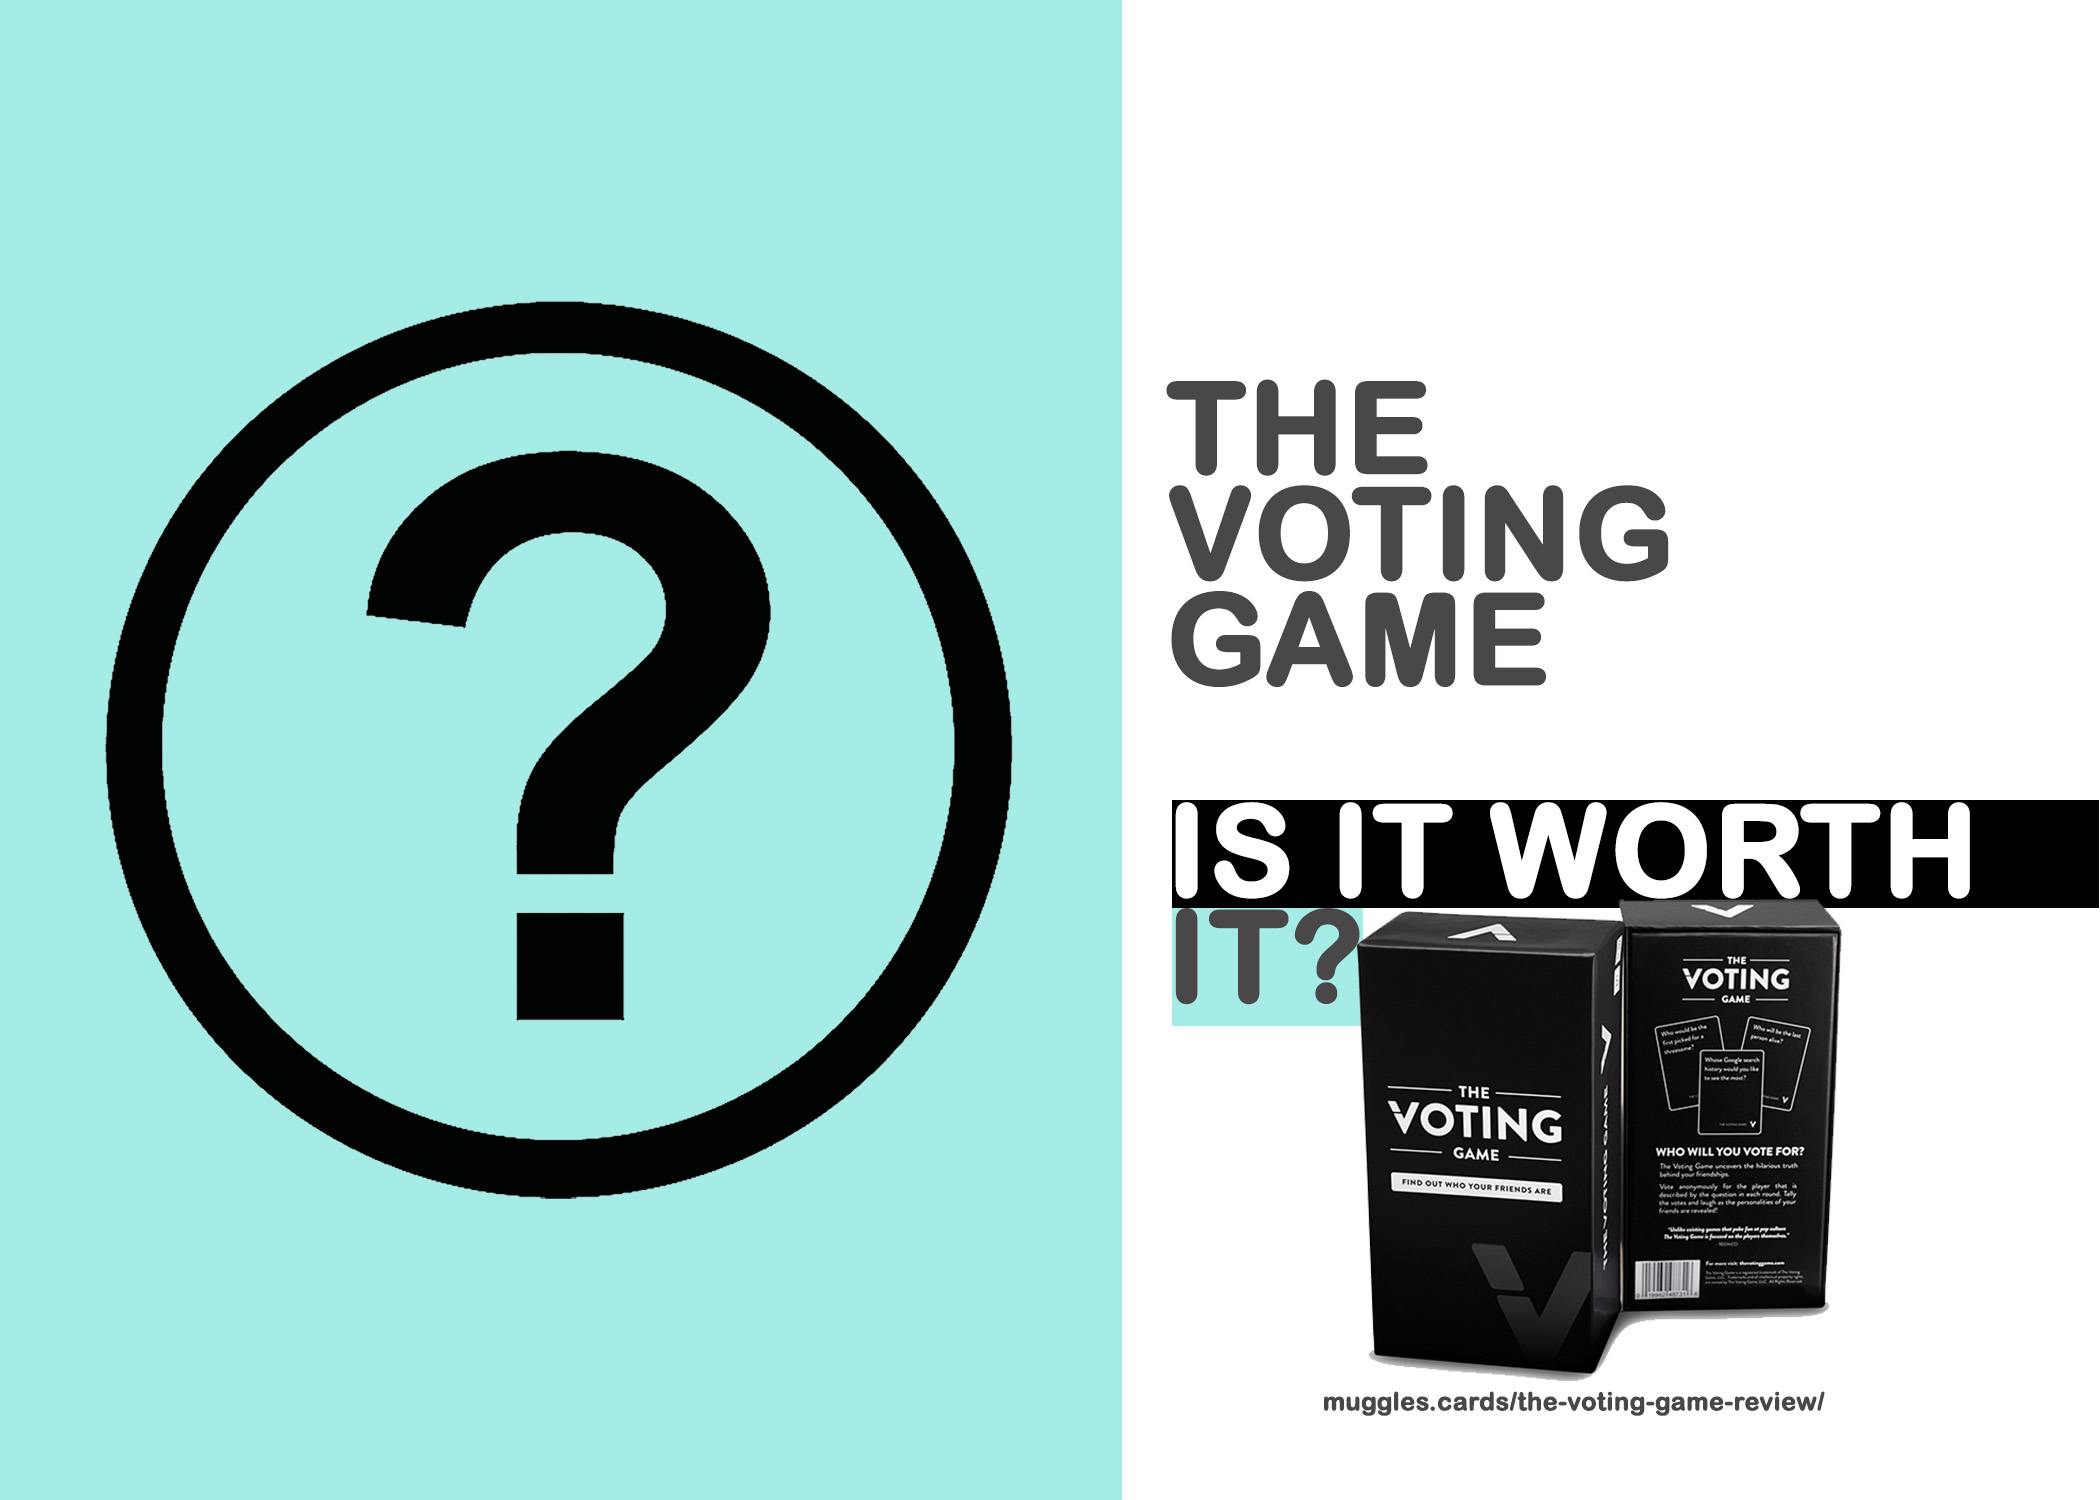 The Voting Game Is It Worth It